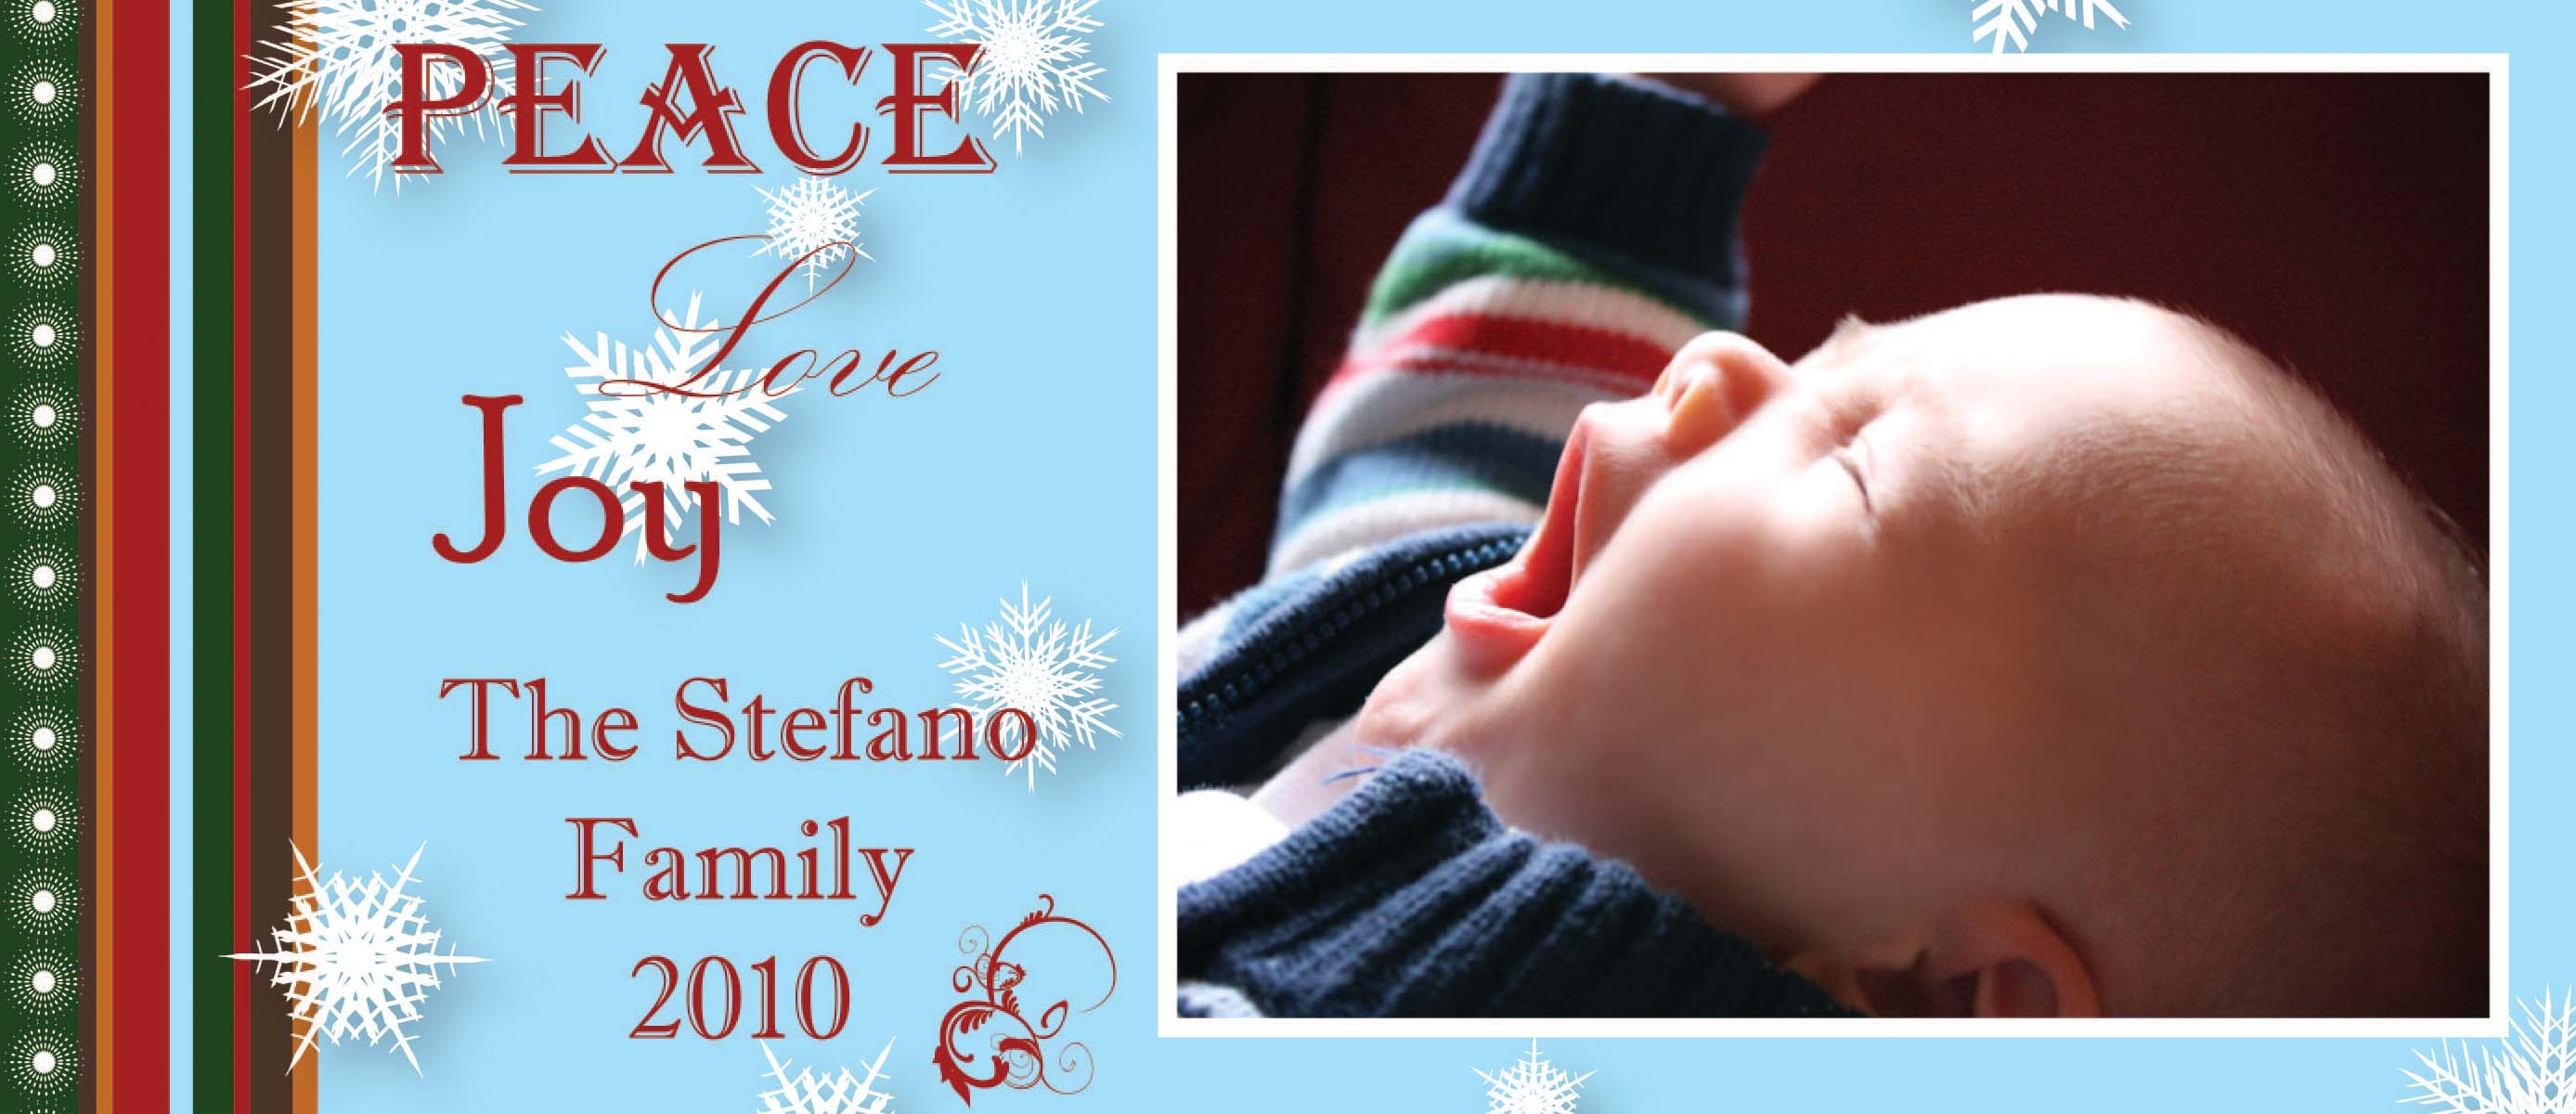 "Peace & Joy Slim Photo Card - This crisp digital holiday photo card is decorated with snowflakes against a pale blue background. The side border mimics a Christmas sweater. There is room for one photo to show your children, family, or even pets to loved ones! ""Peace Love Joy"" is an optional portion of text, and will be included unless otherwise specified. Spread Christmas cheer or simply seasons greetings with this exclusive photo card design!"